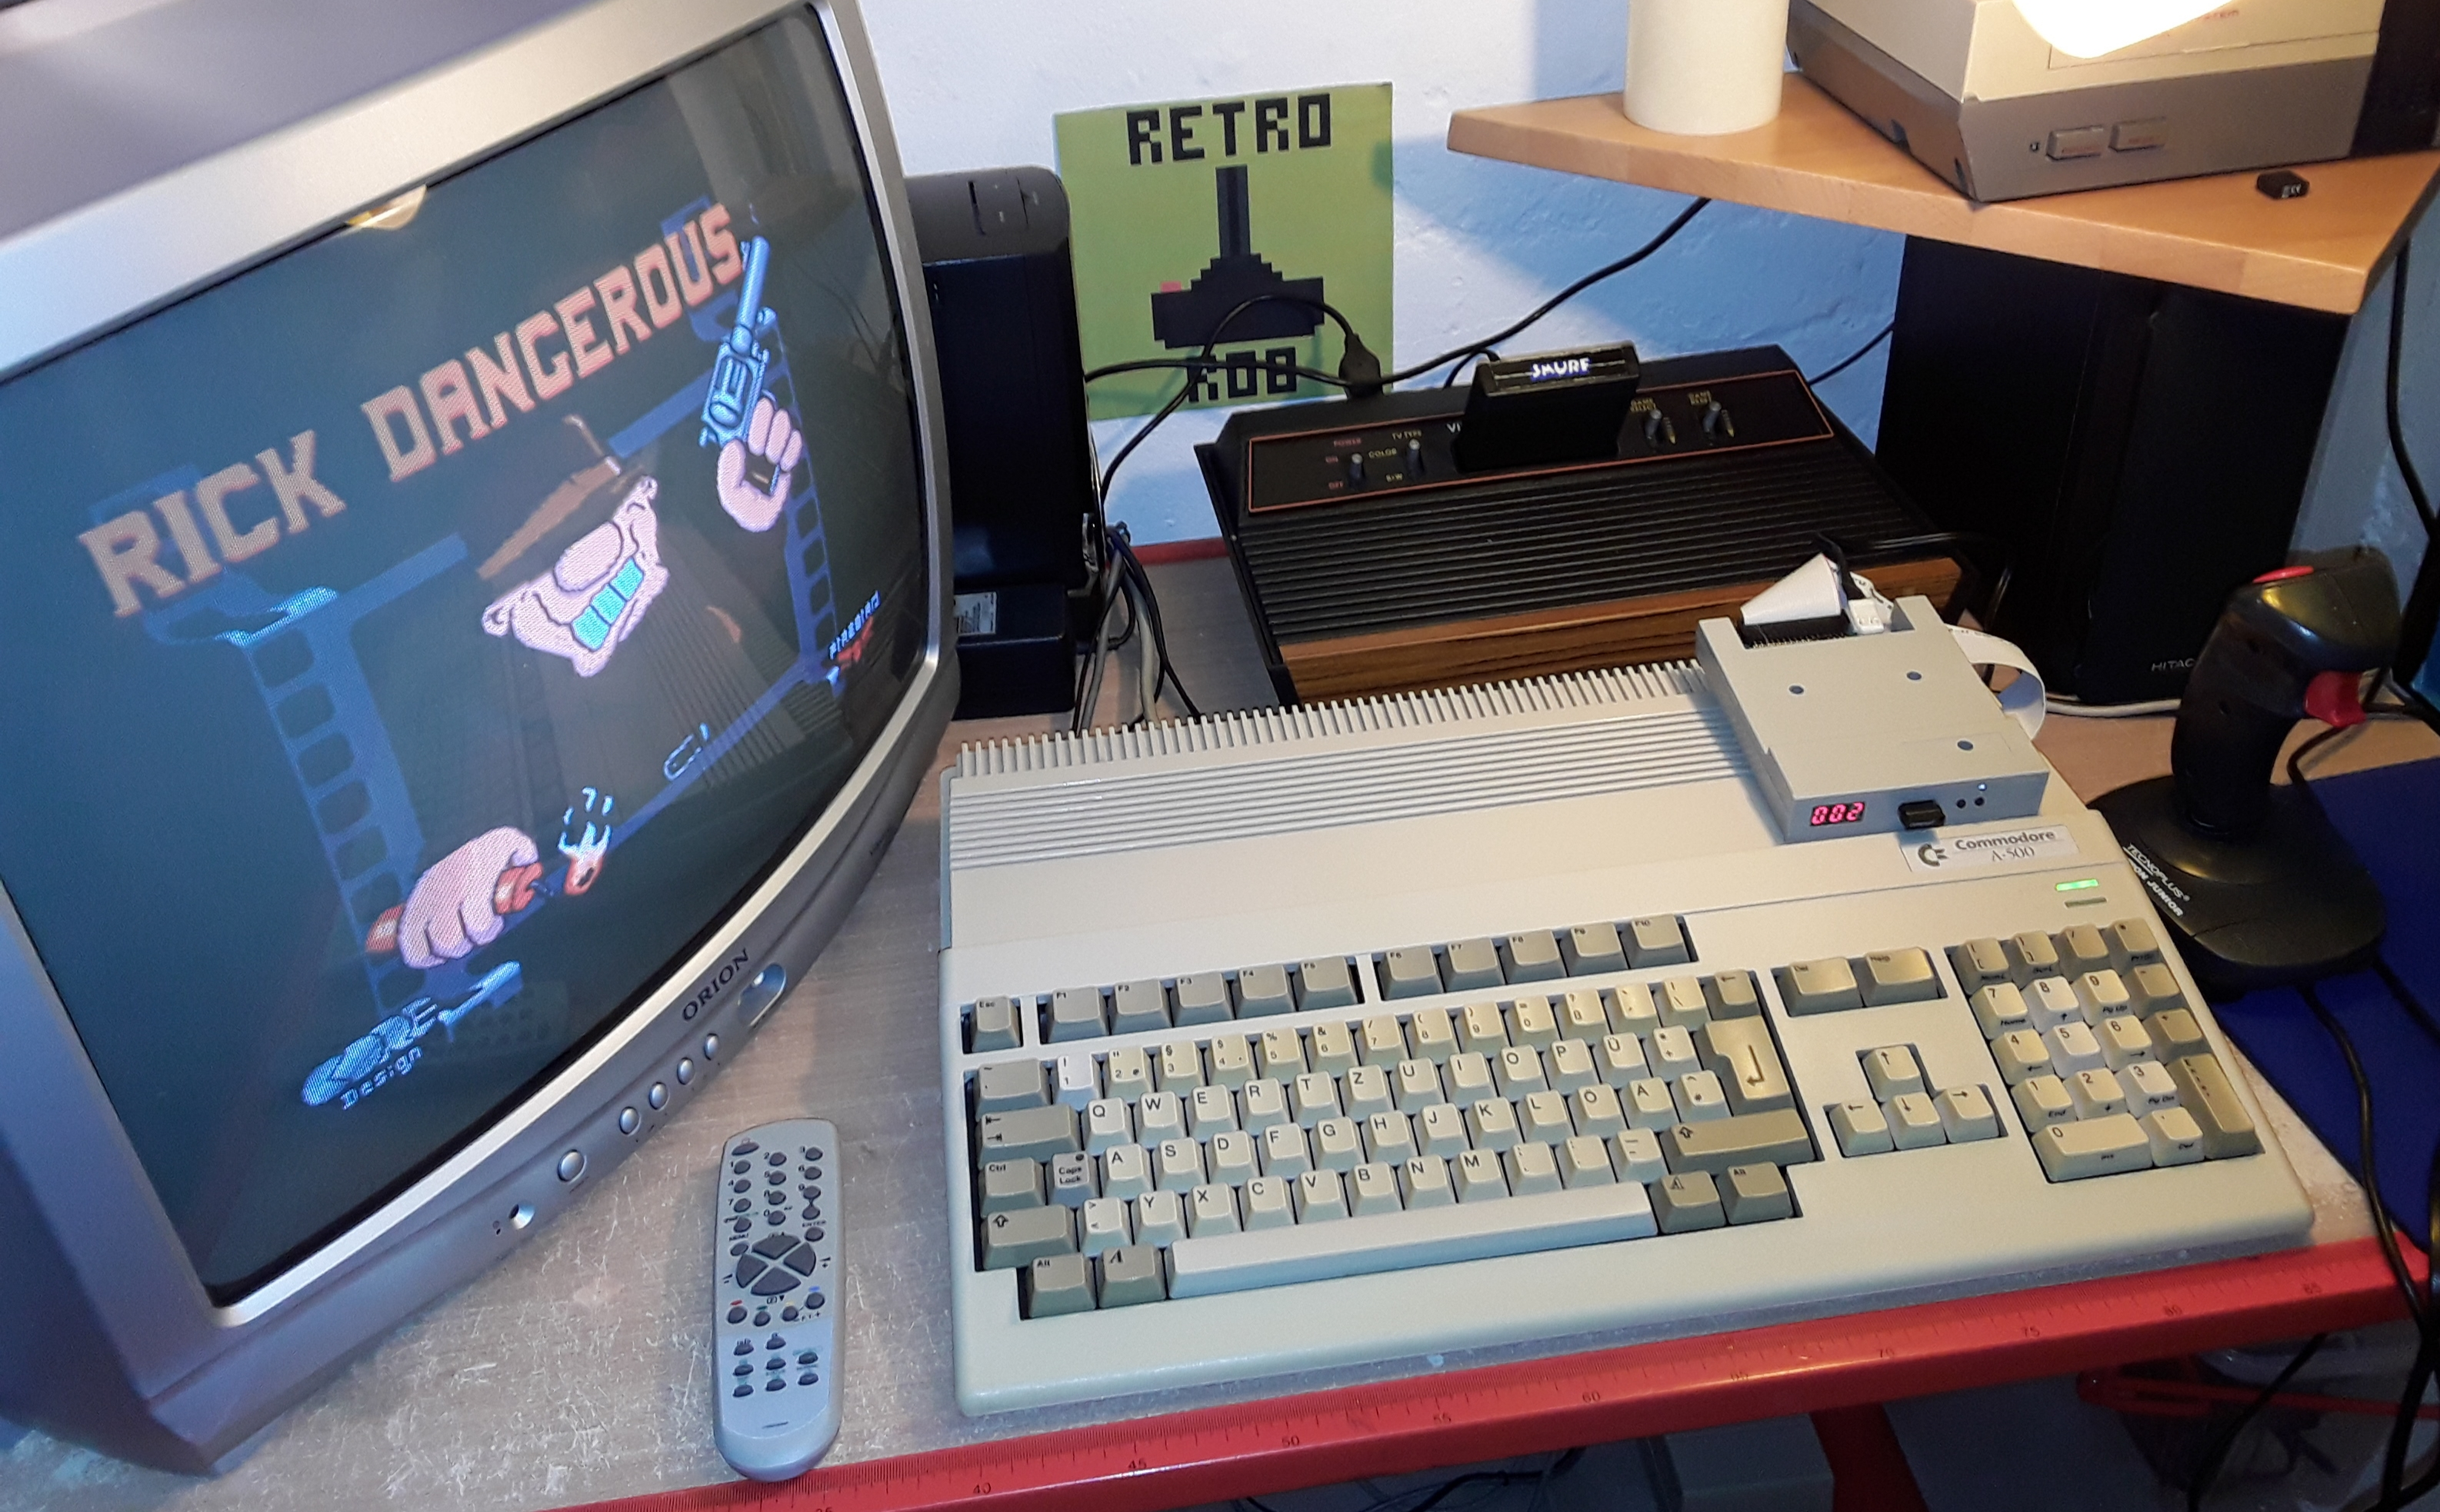 RetroRob: Rick Dangerous (Amiga) 10,220 points on 2019-01-20 04:51:40